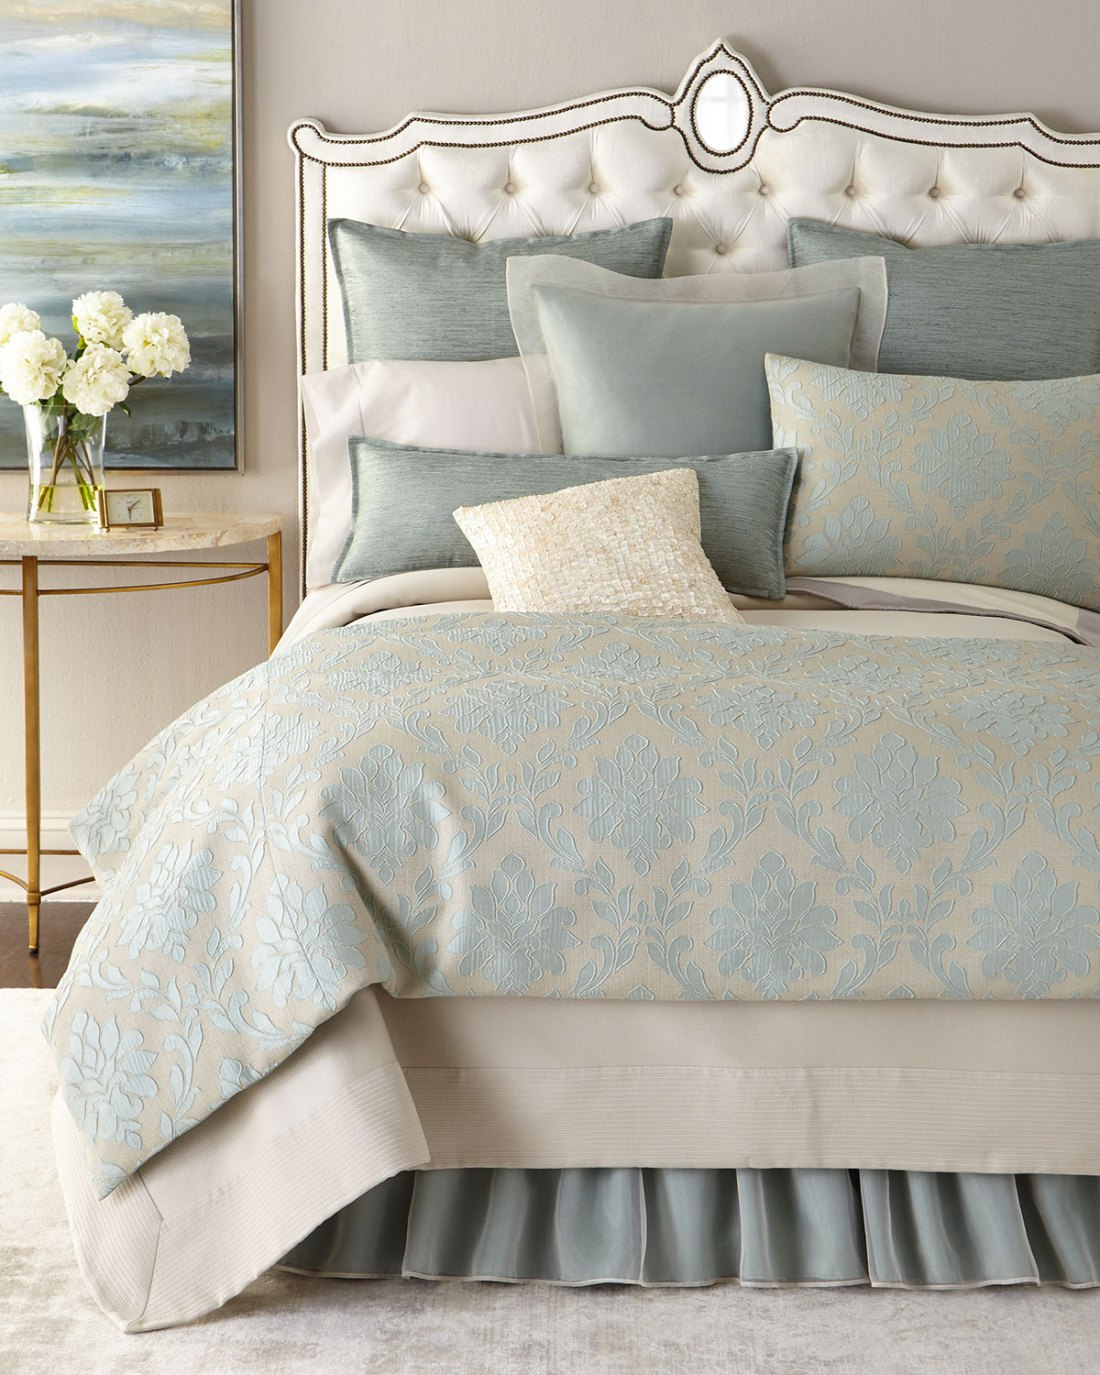 Fino Lino Luxury Bedding